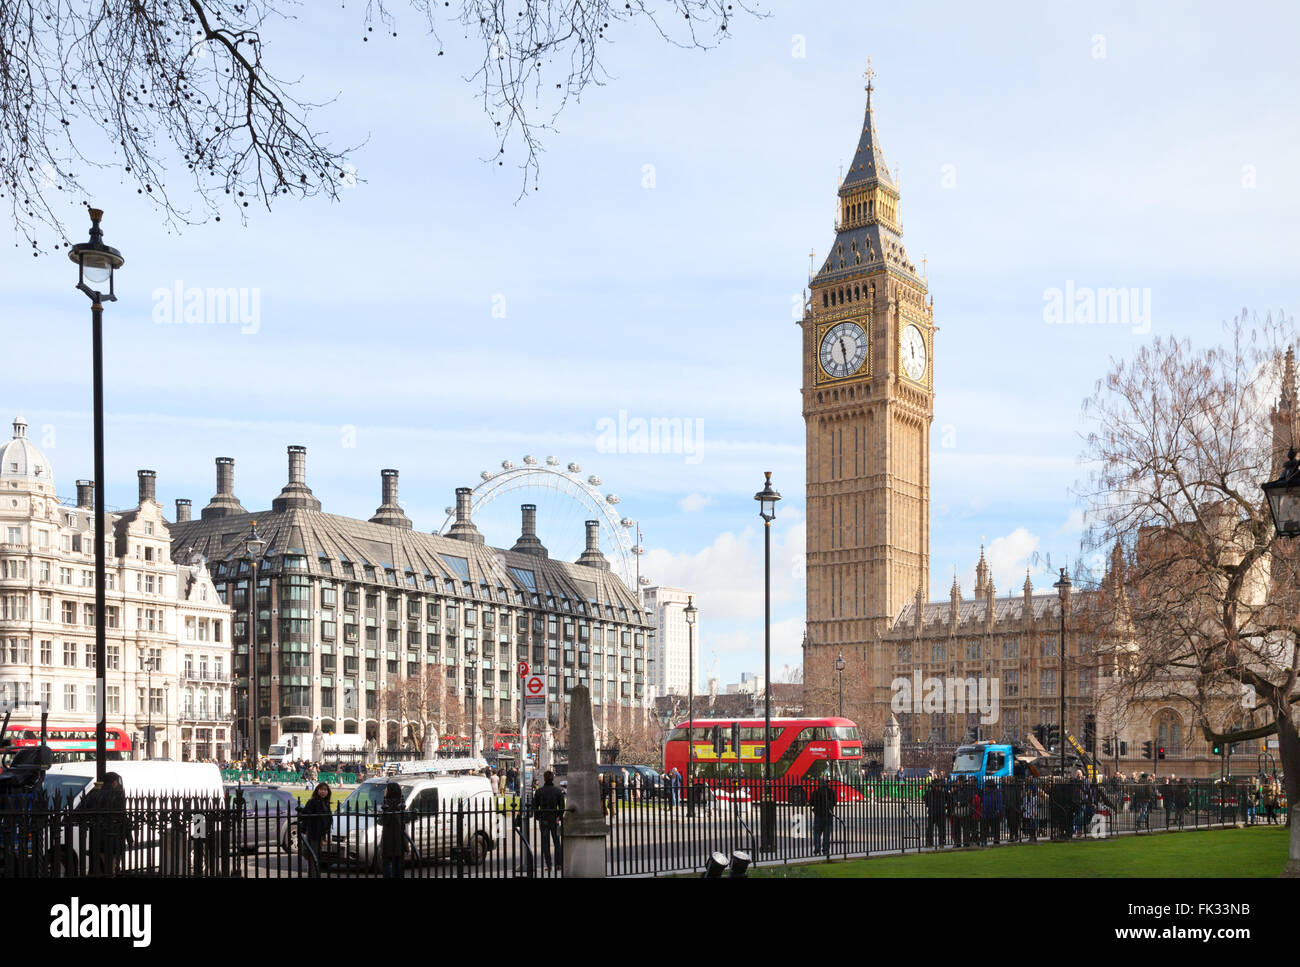 The Houses of Parliament and Big Ben seen from Parliament Square, London UK - Stock Image